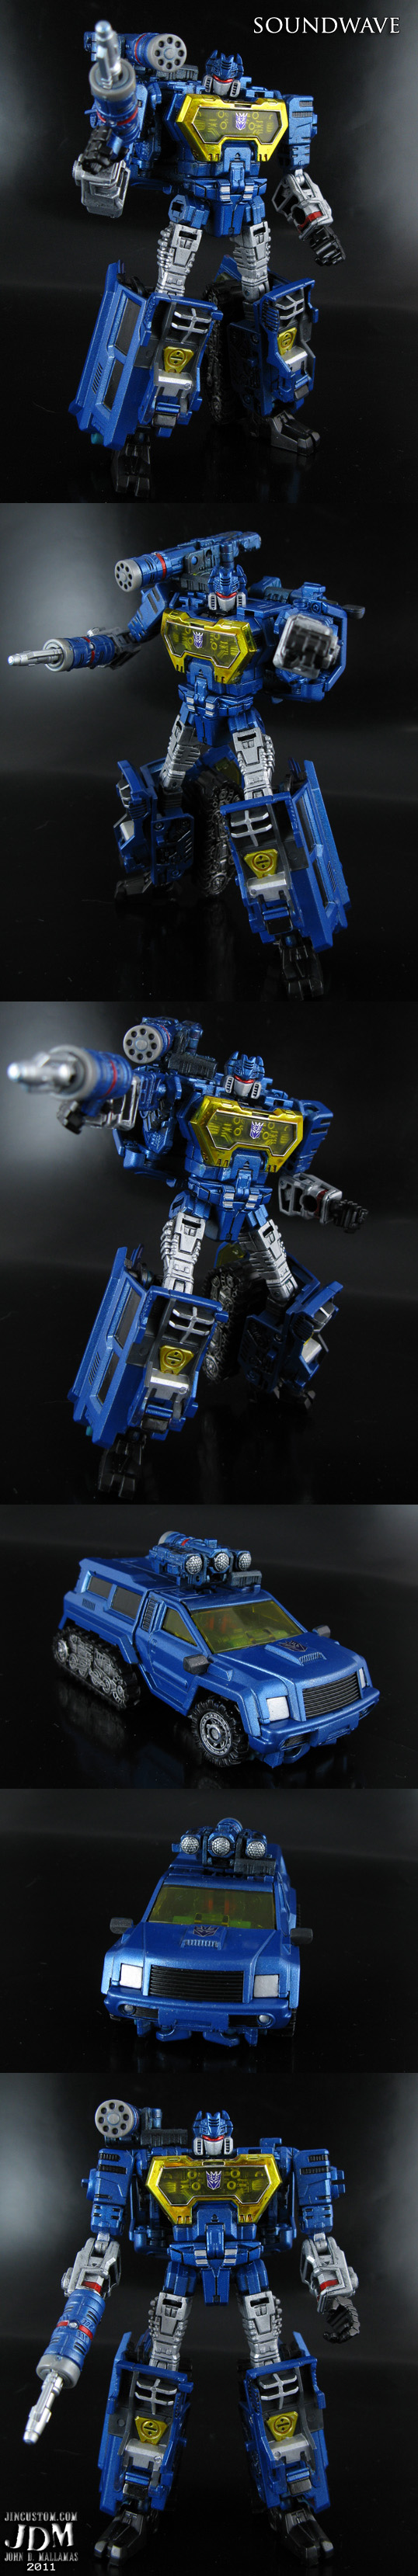 CustomSoundwave